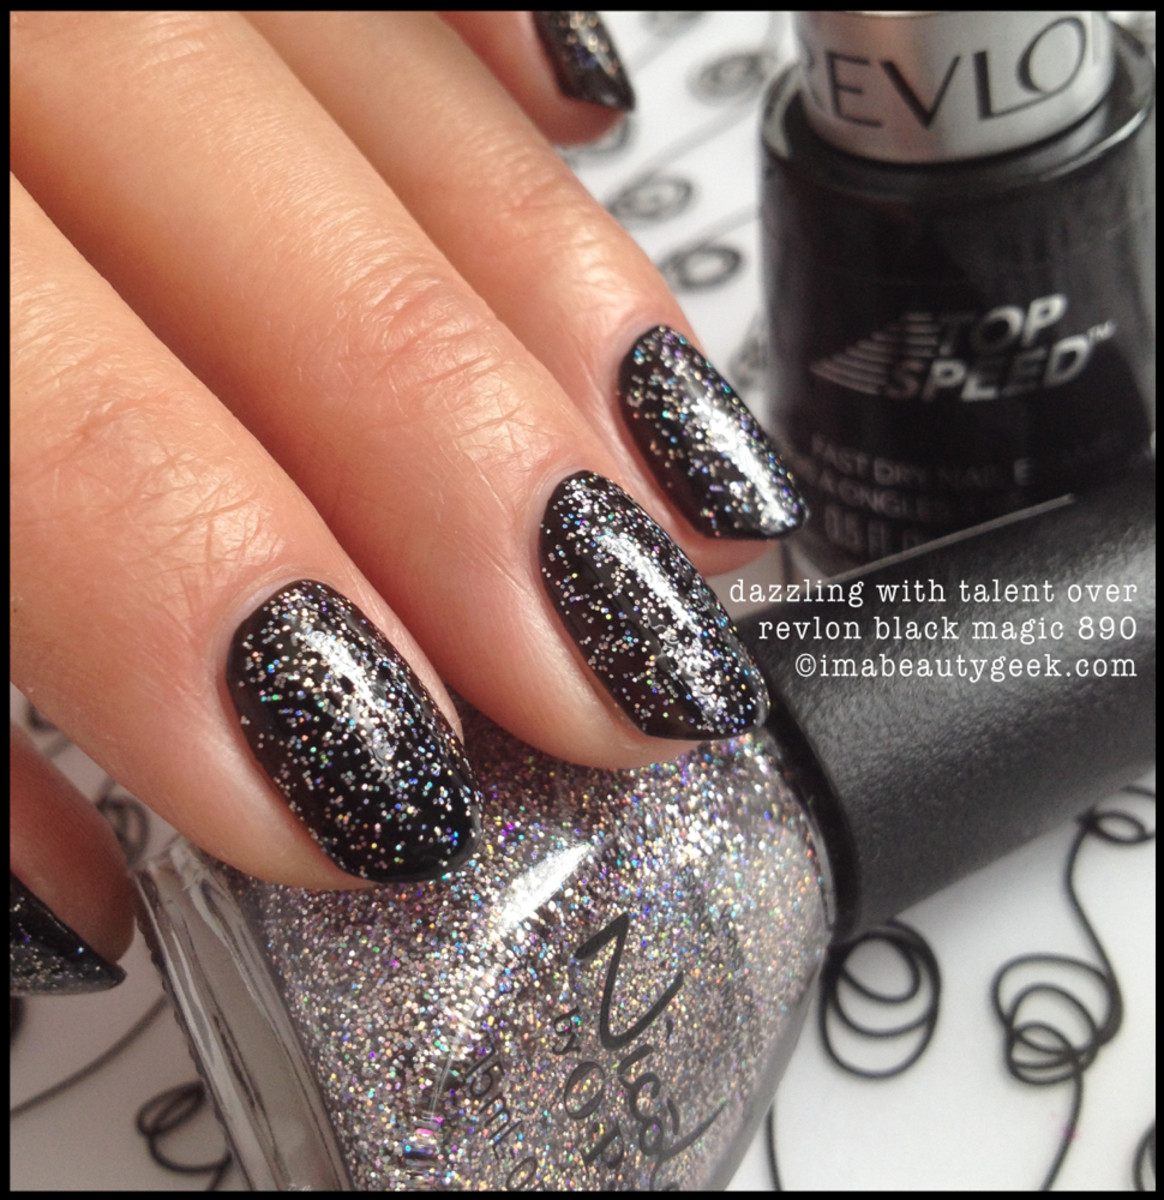 Nicole by OPI Dazzling with Talent over Revlon Black Magic Fall 2014